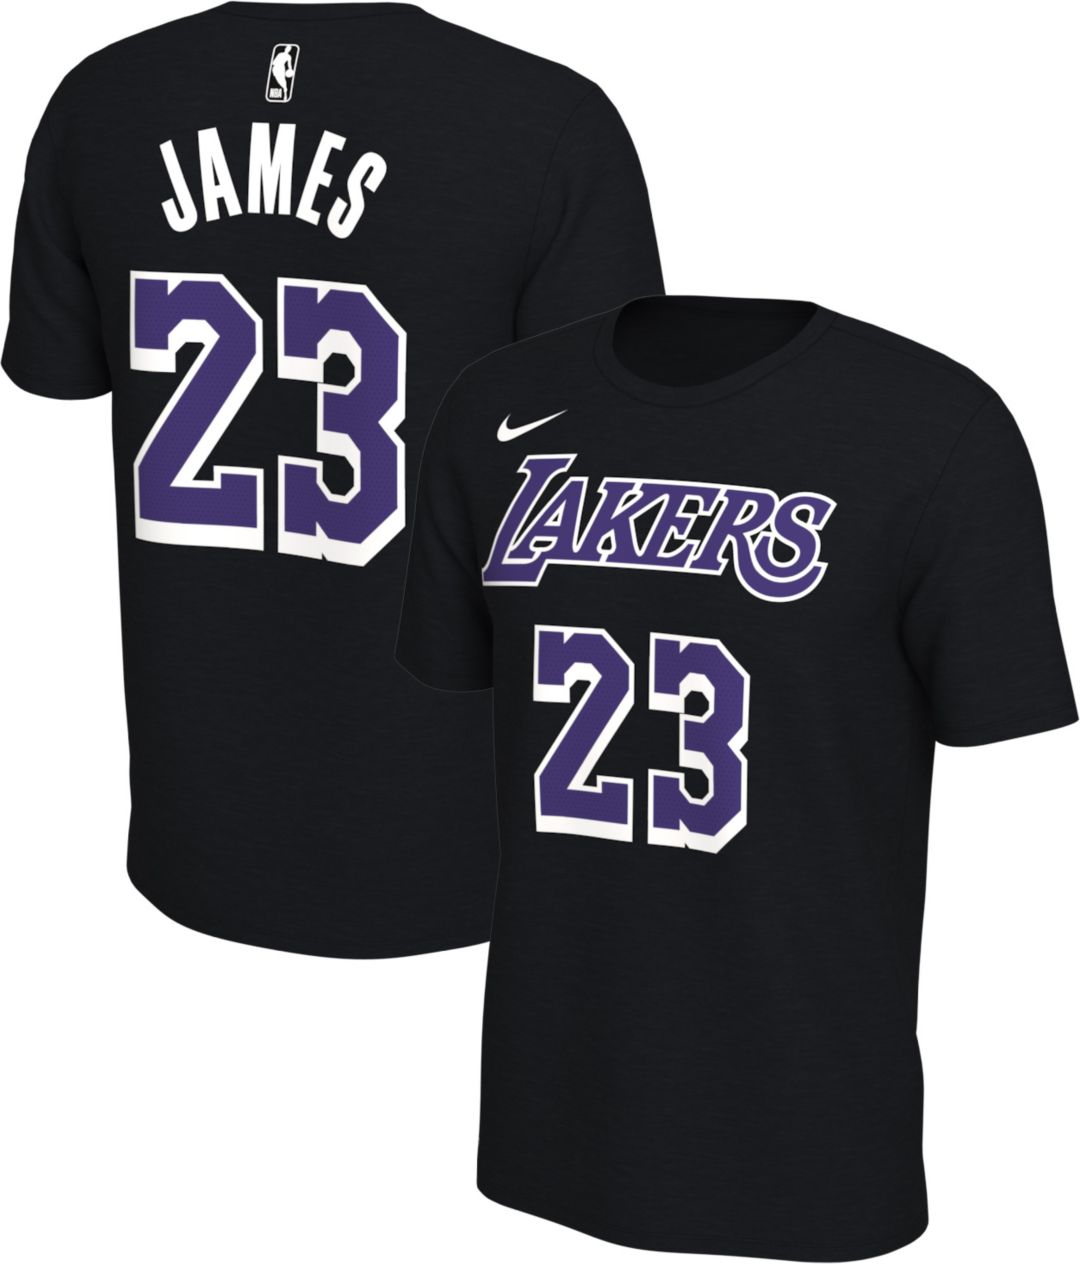 promo code 8b5b0 0f9be Nike Men's Los Angeles Lakers LeBron James #23 Dri-FIT Black T-Shirt